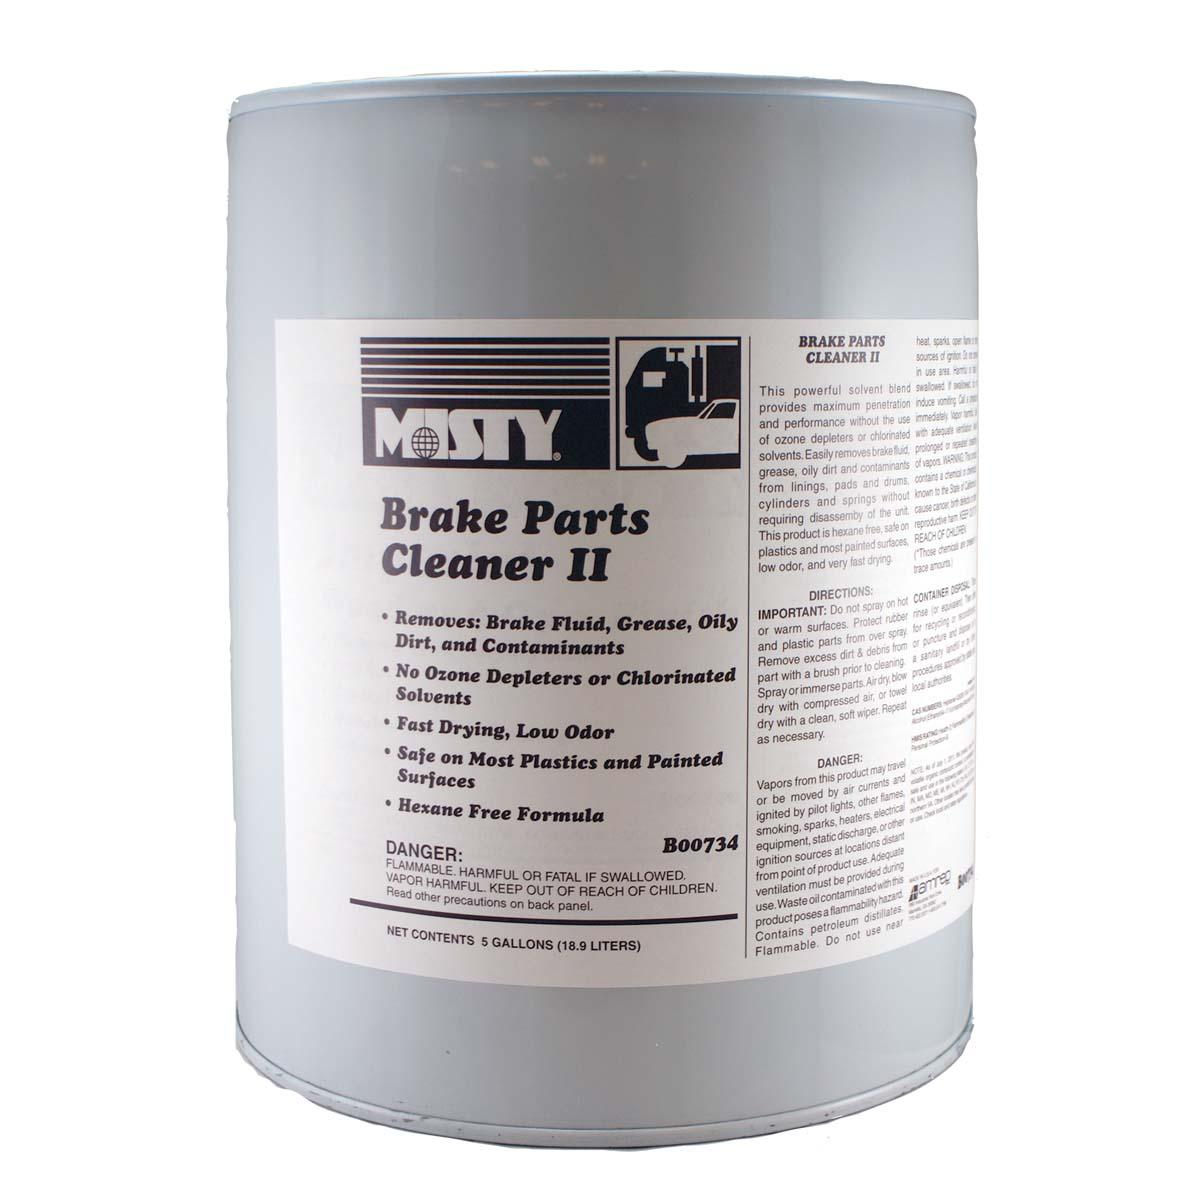 Brake Parts Cleaner II